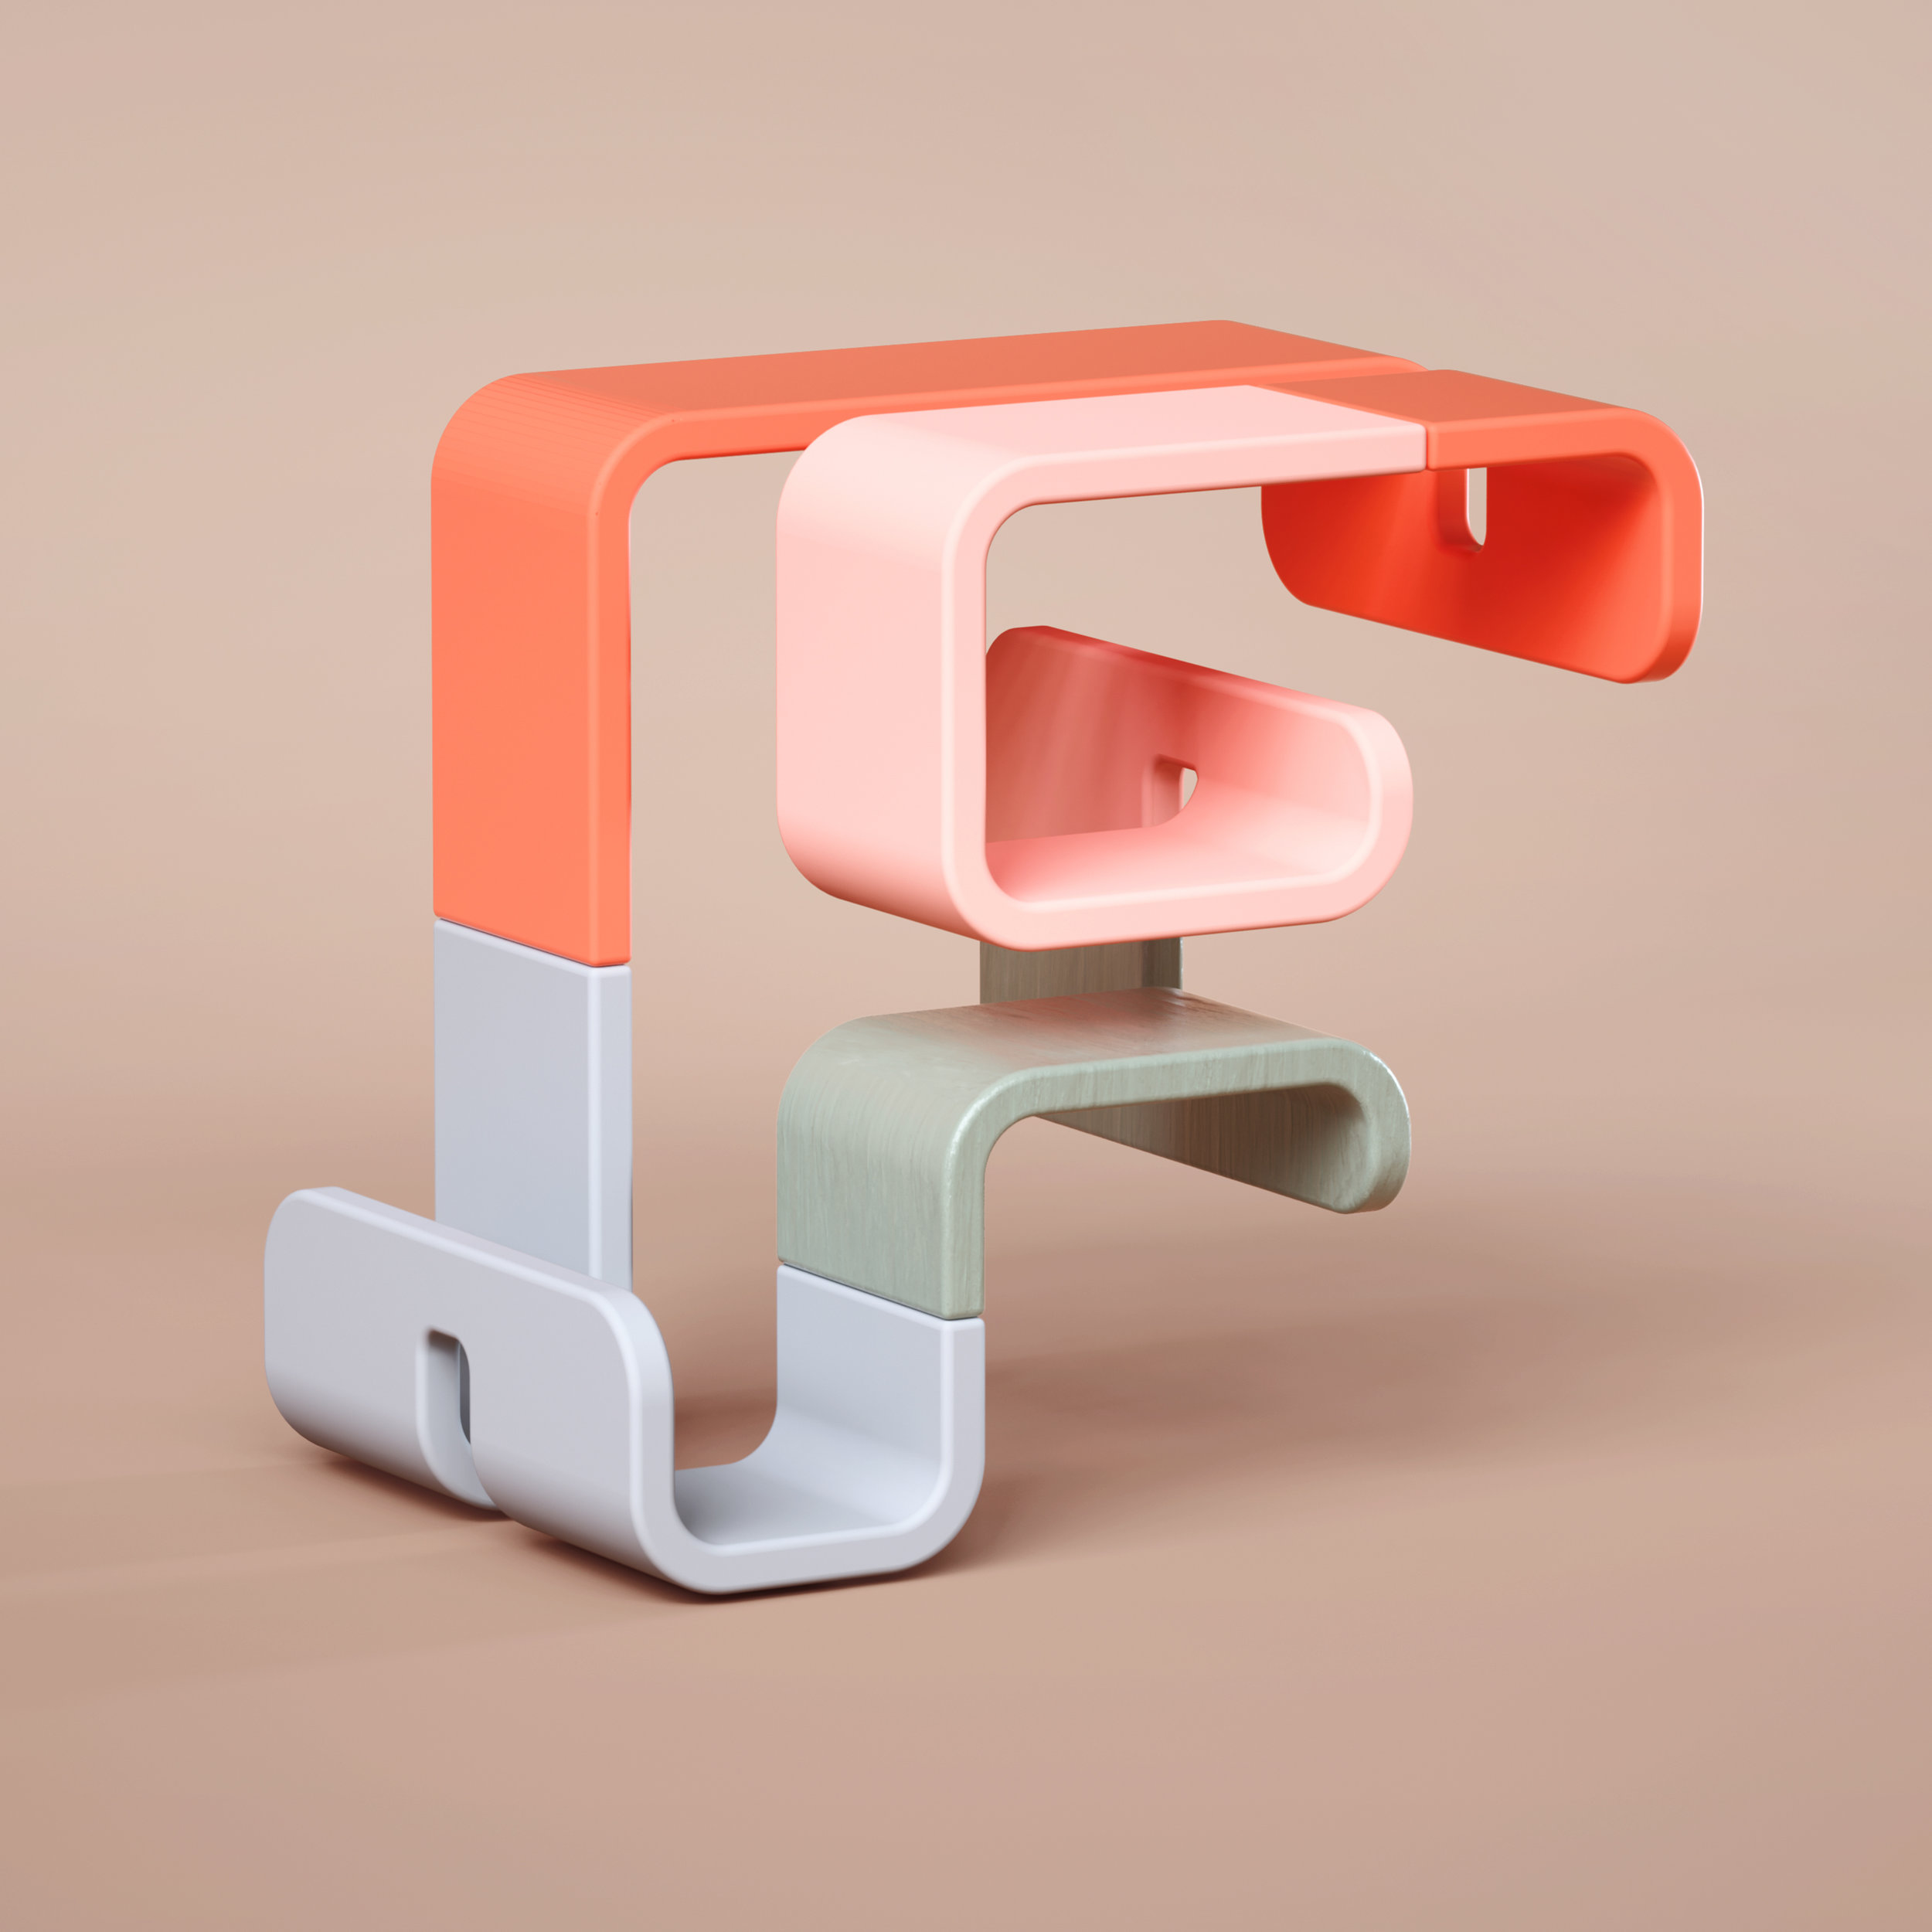 36 Days of Type 2019 - 3D Typeform letter F visual.